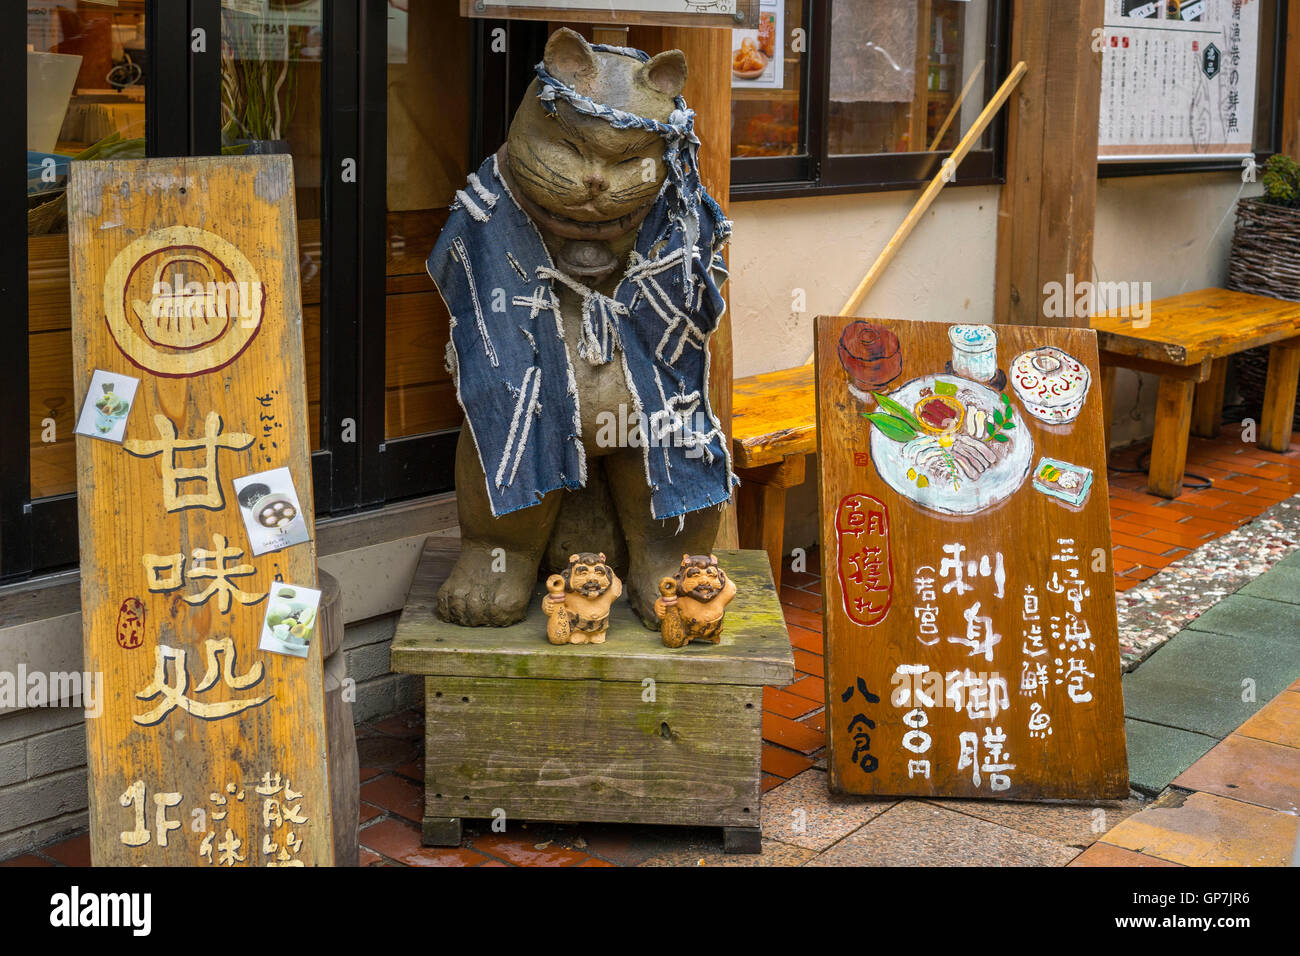 Placards displaying restaurant day menu outside, kamakura, japan - Stock Image